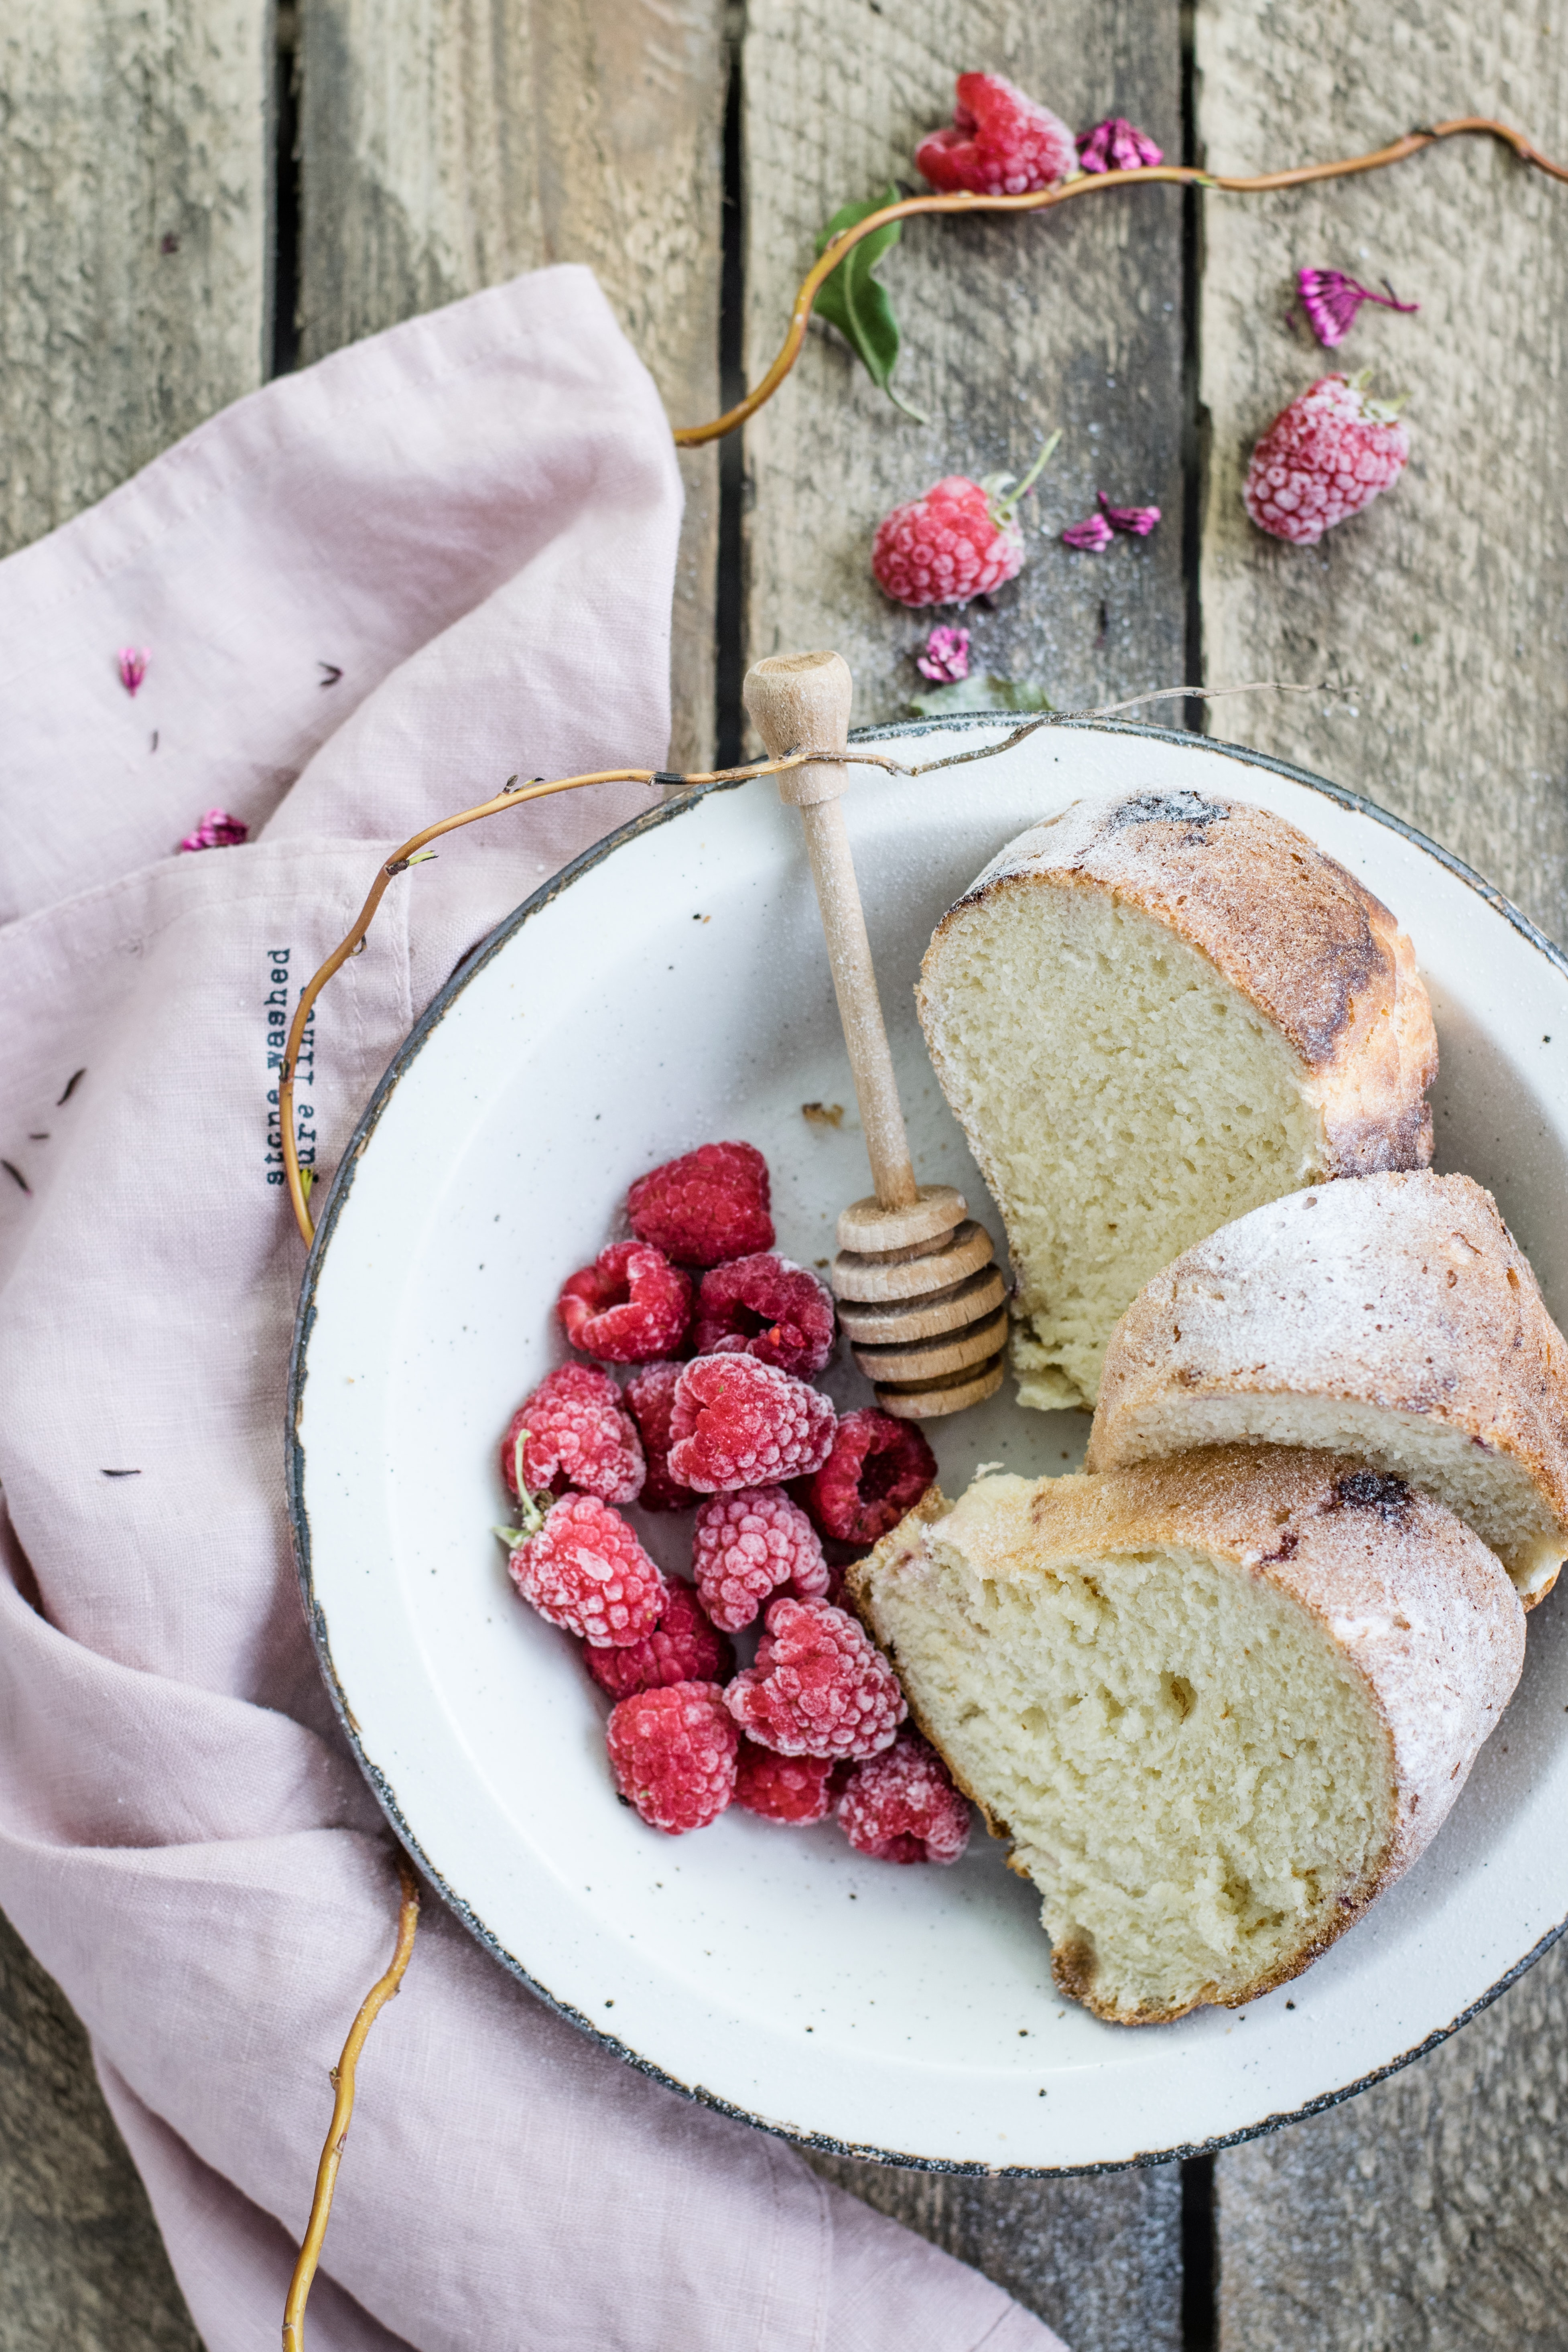 toasted bread and raspberry served on white plate